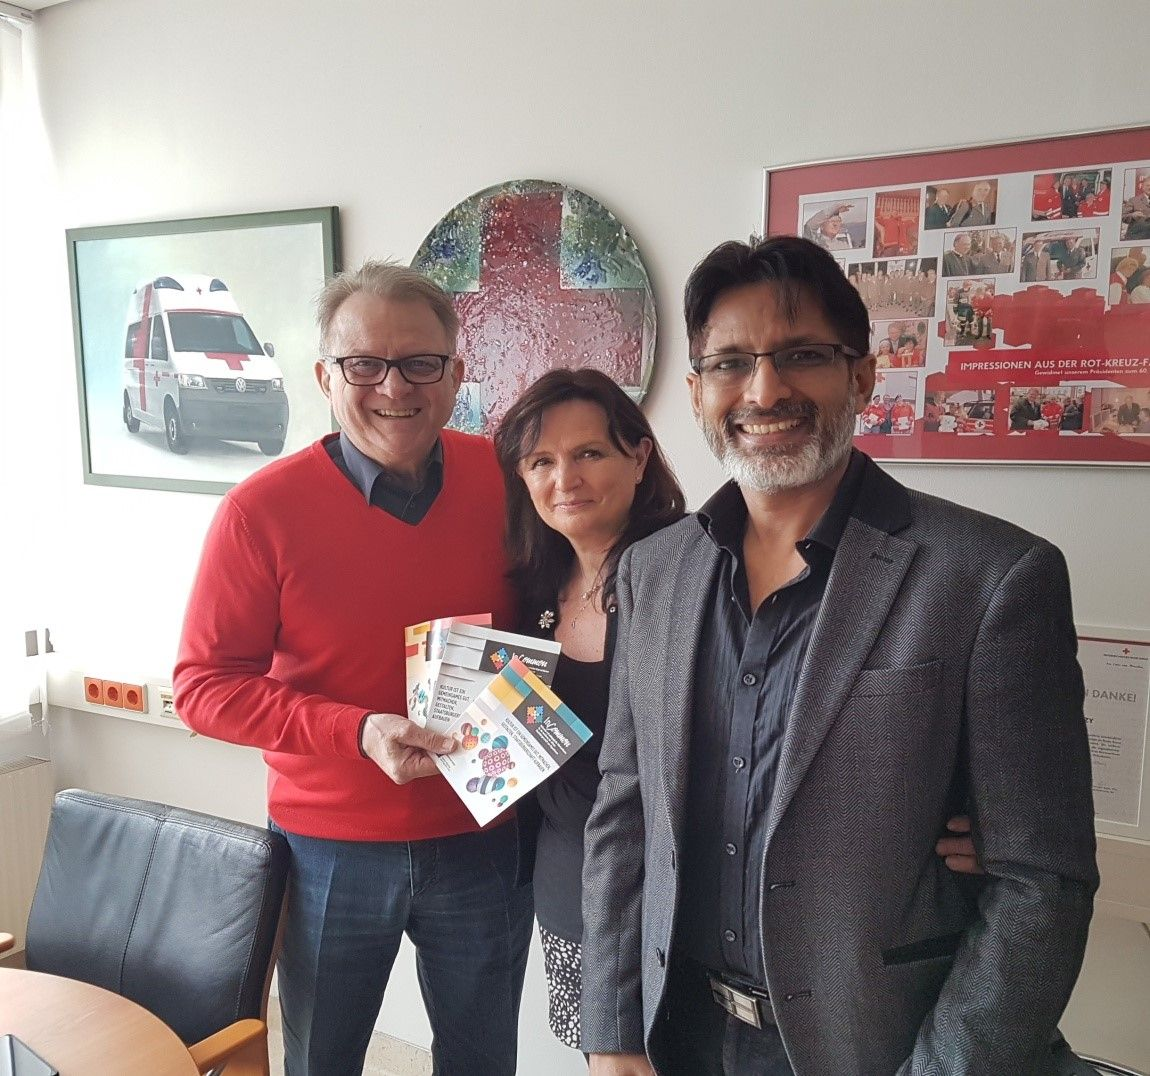 Meetings with grassroots organisations in Austria to involve volunteers in InCommon